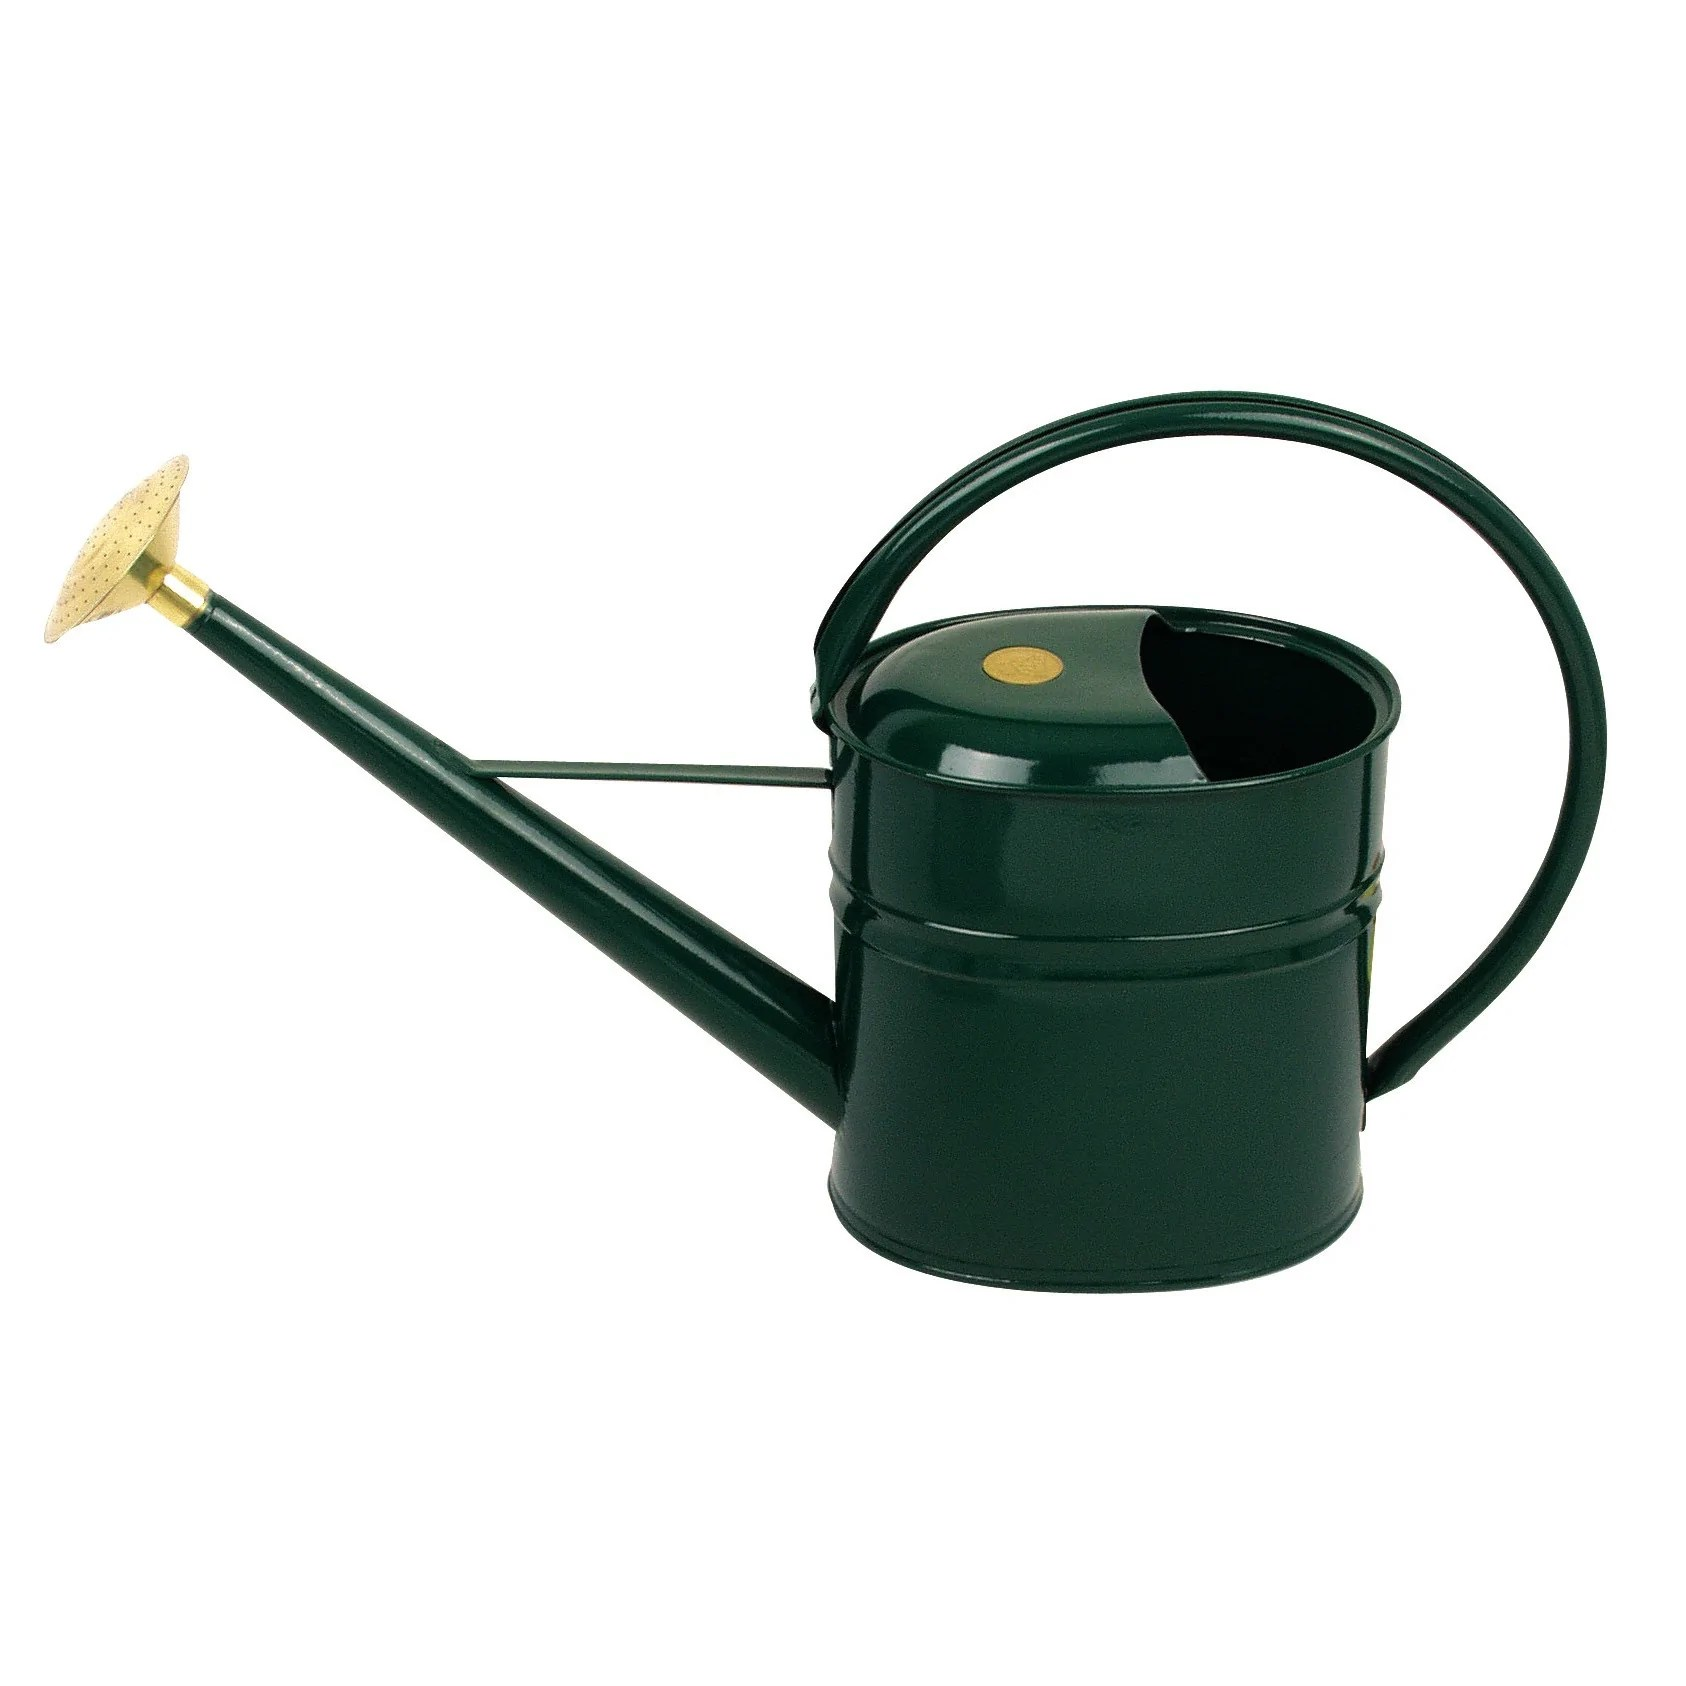 Enamour Haws Litre Slimcan Watering Can Potting Shed Garden Tools Haws Litre Slimcan Watering Can Haws Watering Can Ebay Haws Watering Can Rose houzz-03 Haws Watering Can